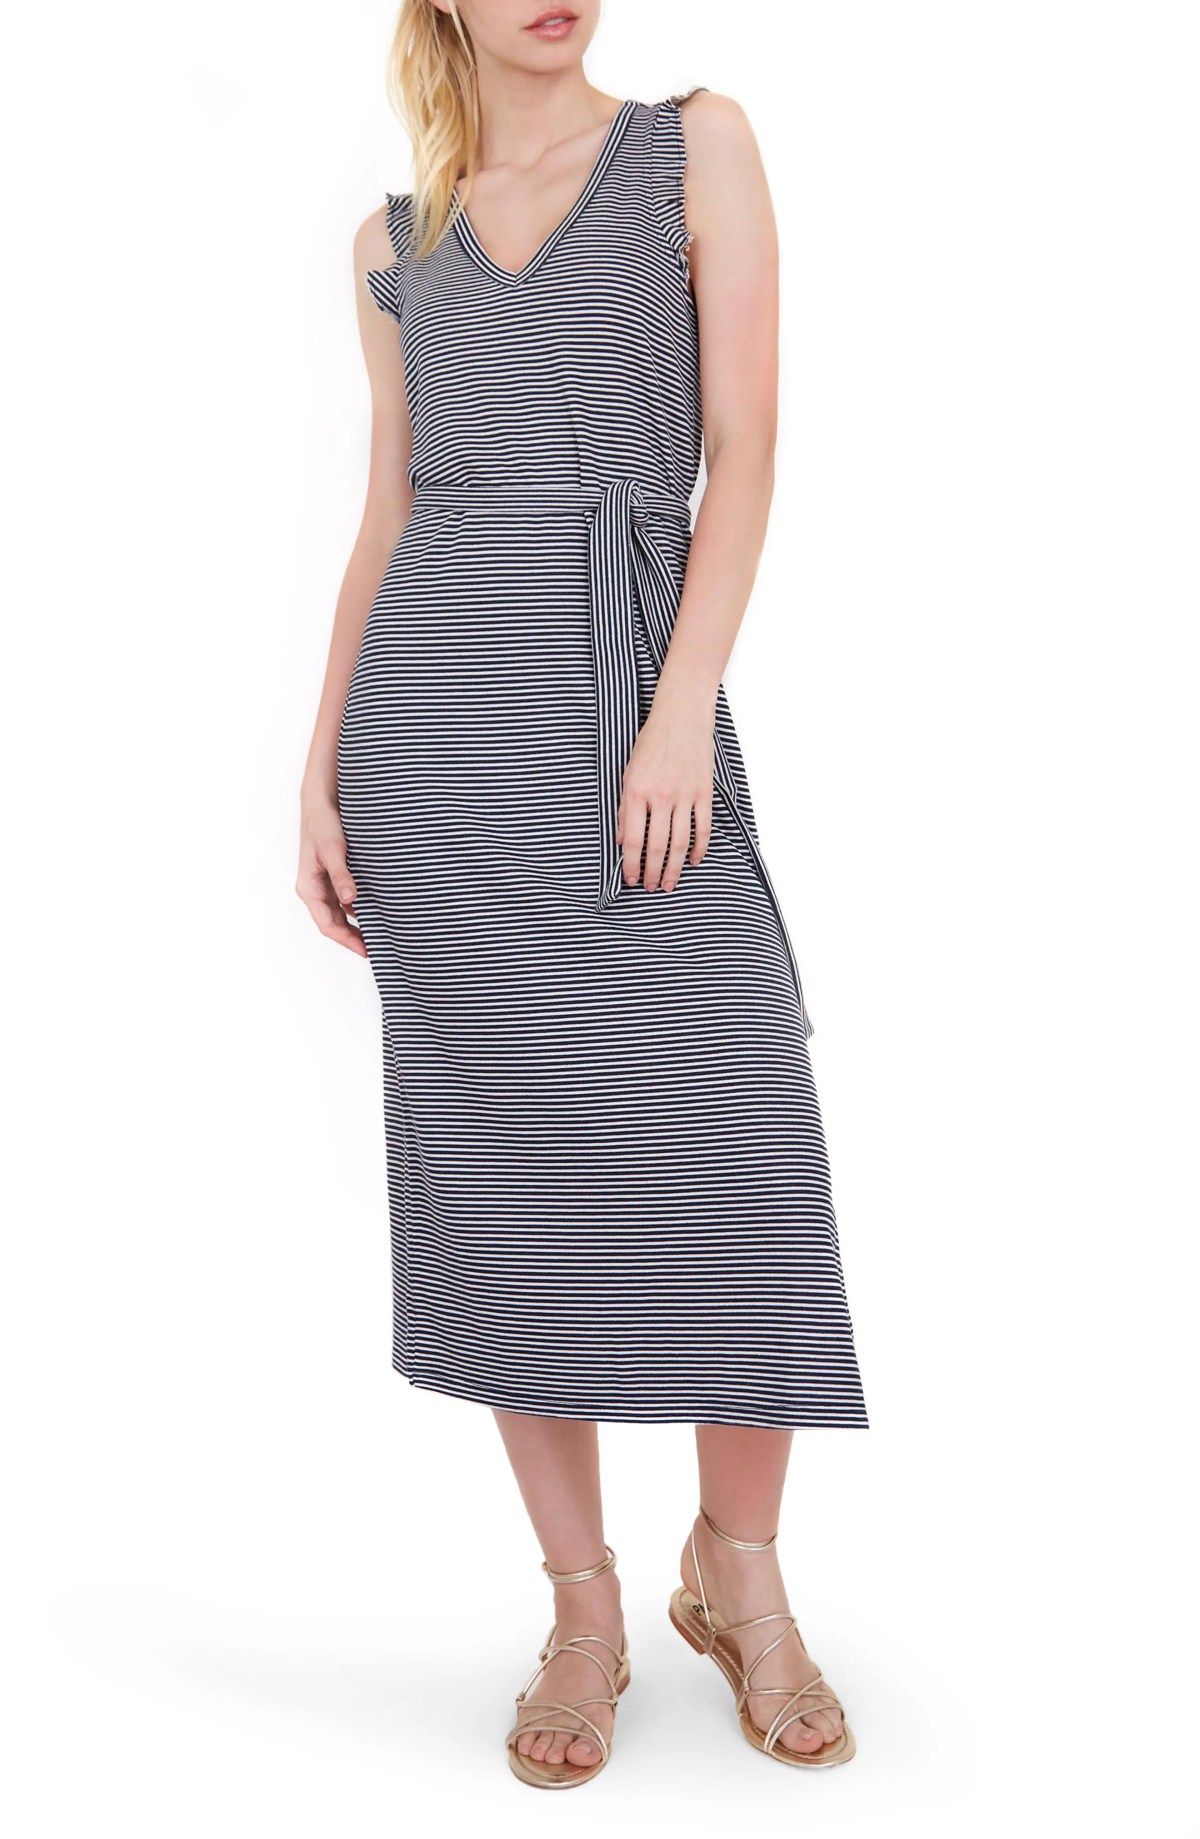 PAIGE Ravyn Stripe Sleeveless Midi Dress, Main, color, NAVY/ WHITE STRIPE